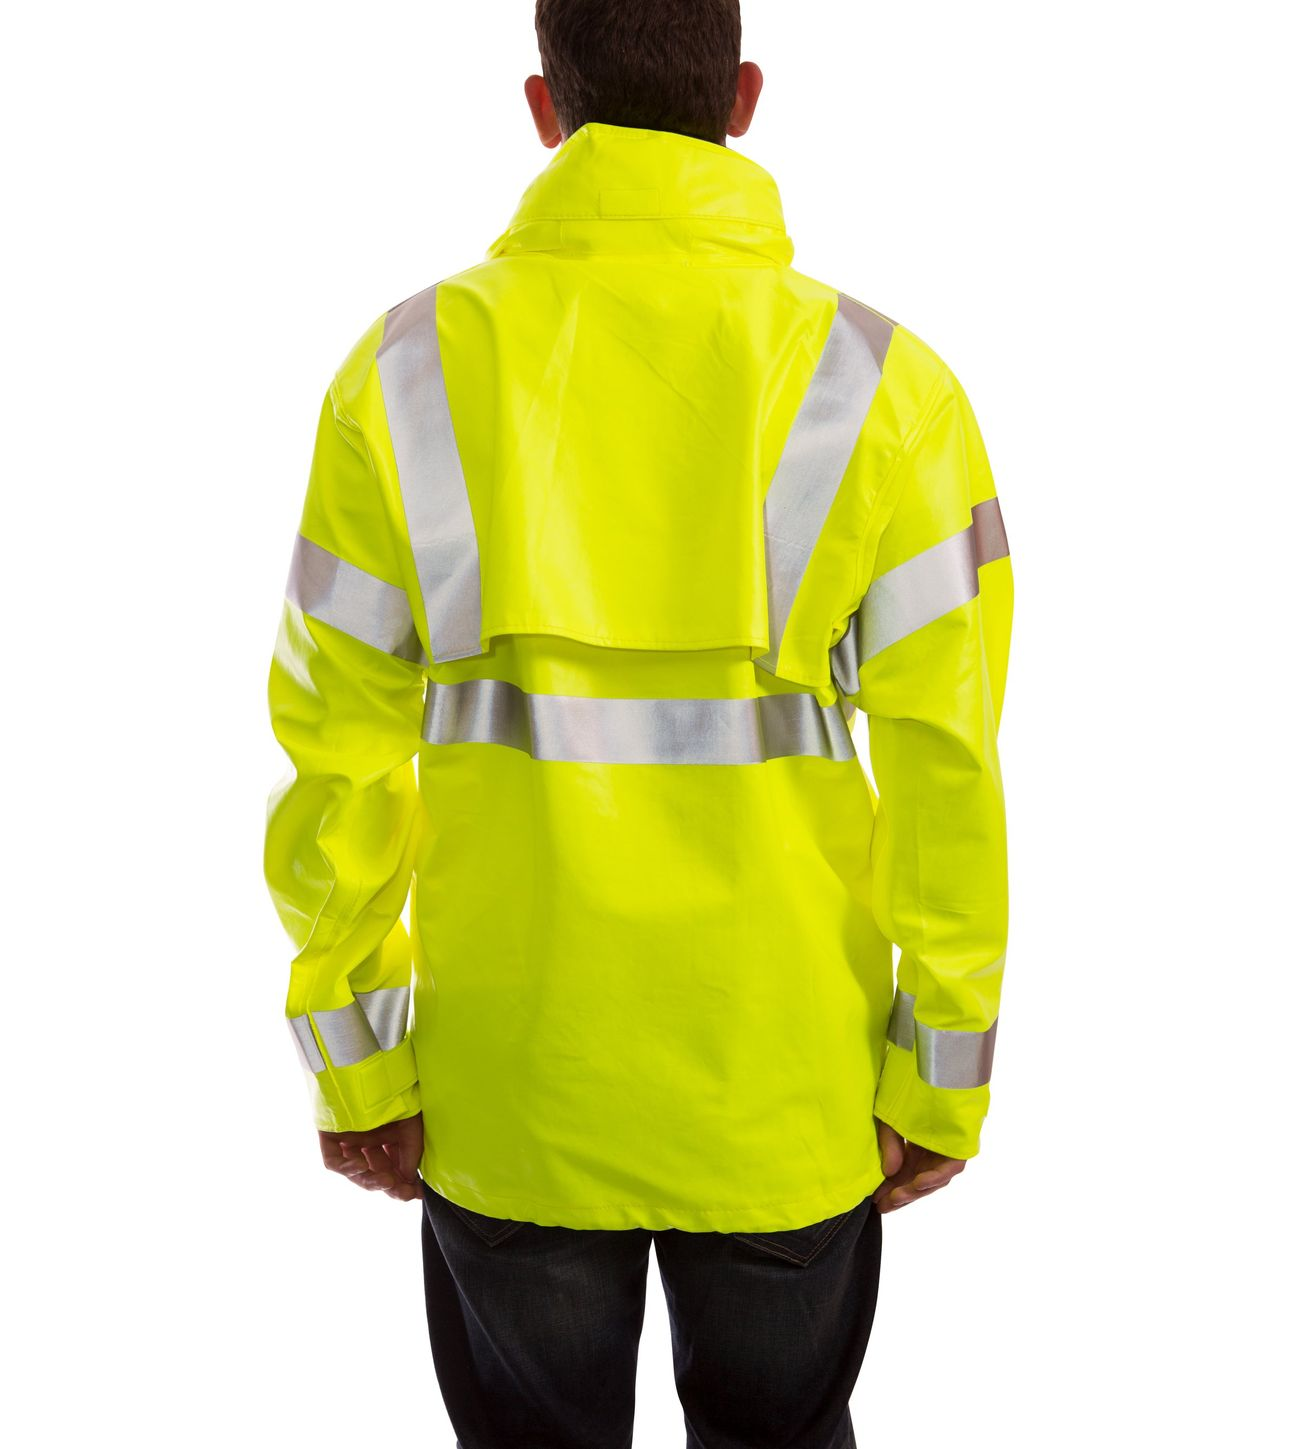 tingley-eclipse-arc-flash-and-fire-resistant-rain-jacket-pvc-on-nomex-chemical-resistant-class-3-hi-vis-fluorescent-yellow-green-back.jpg